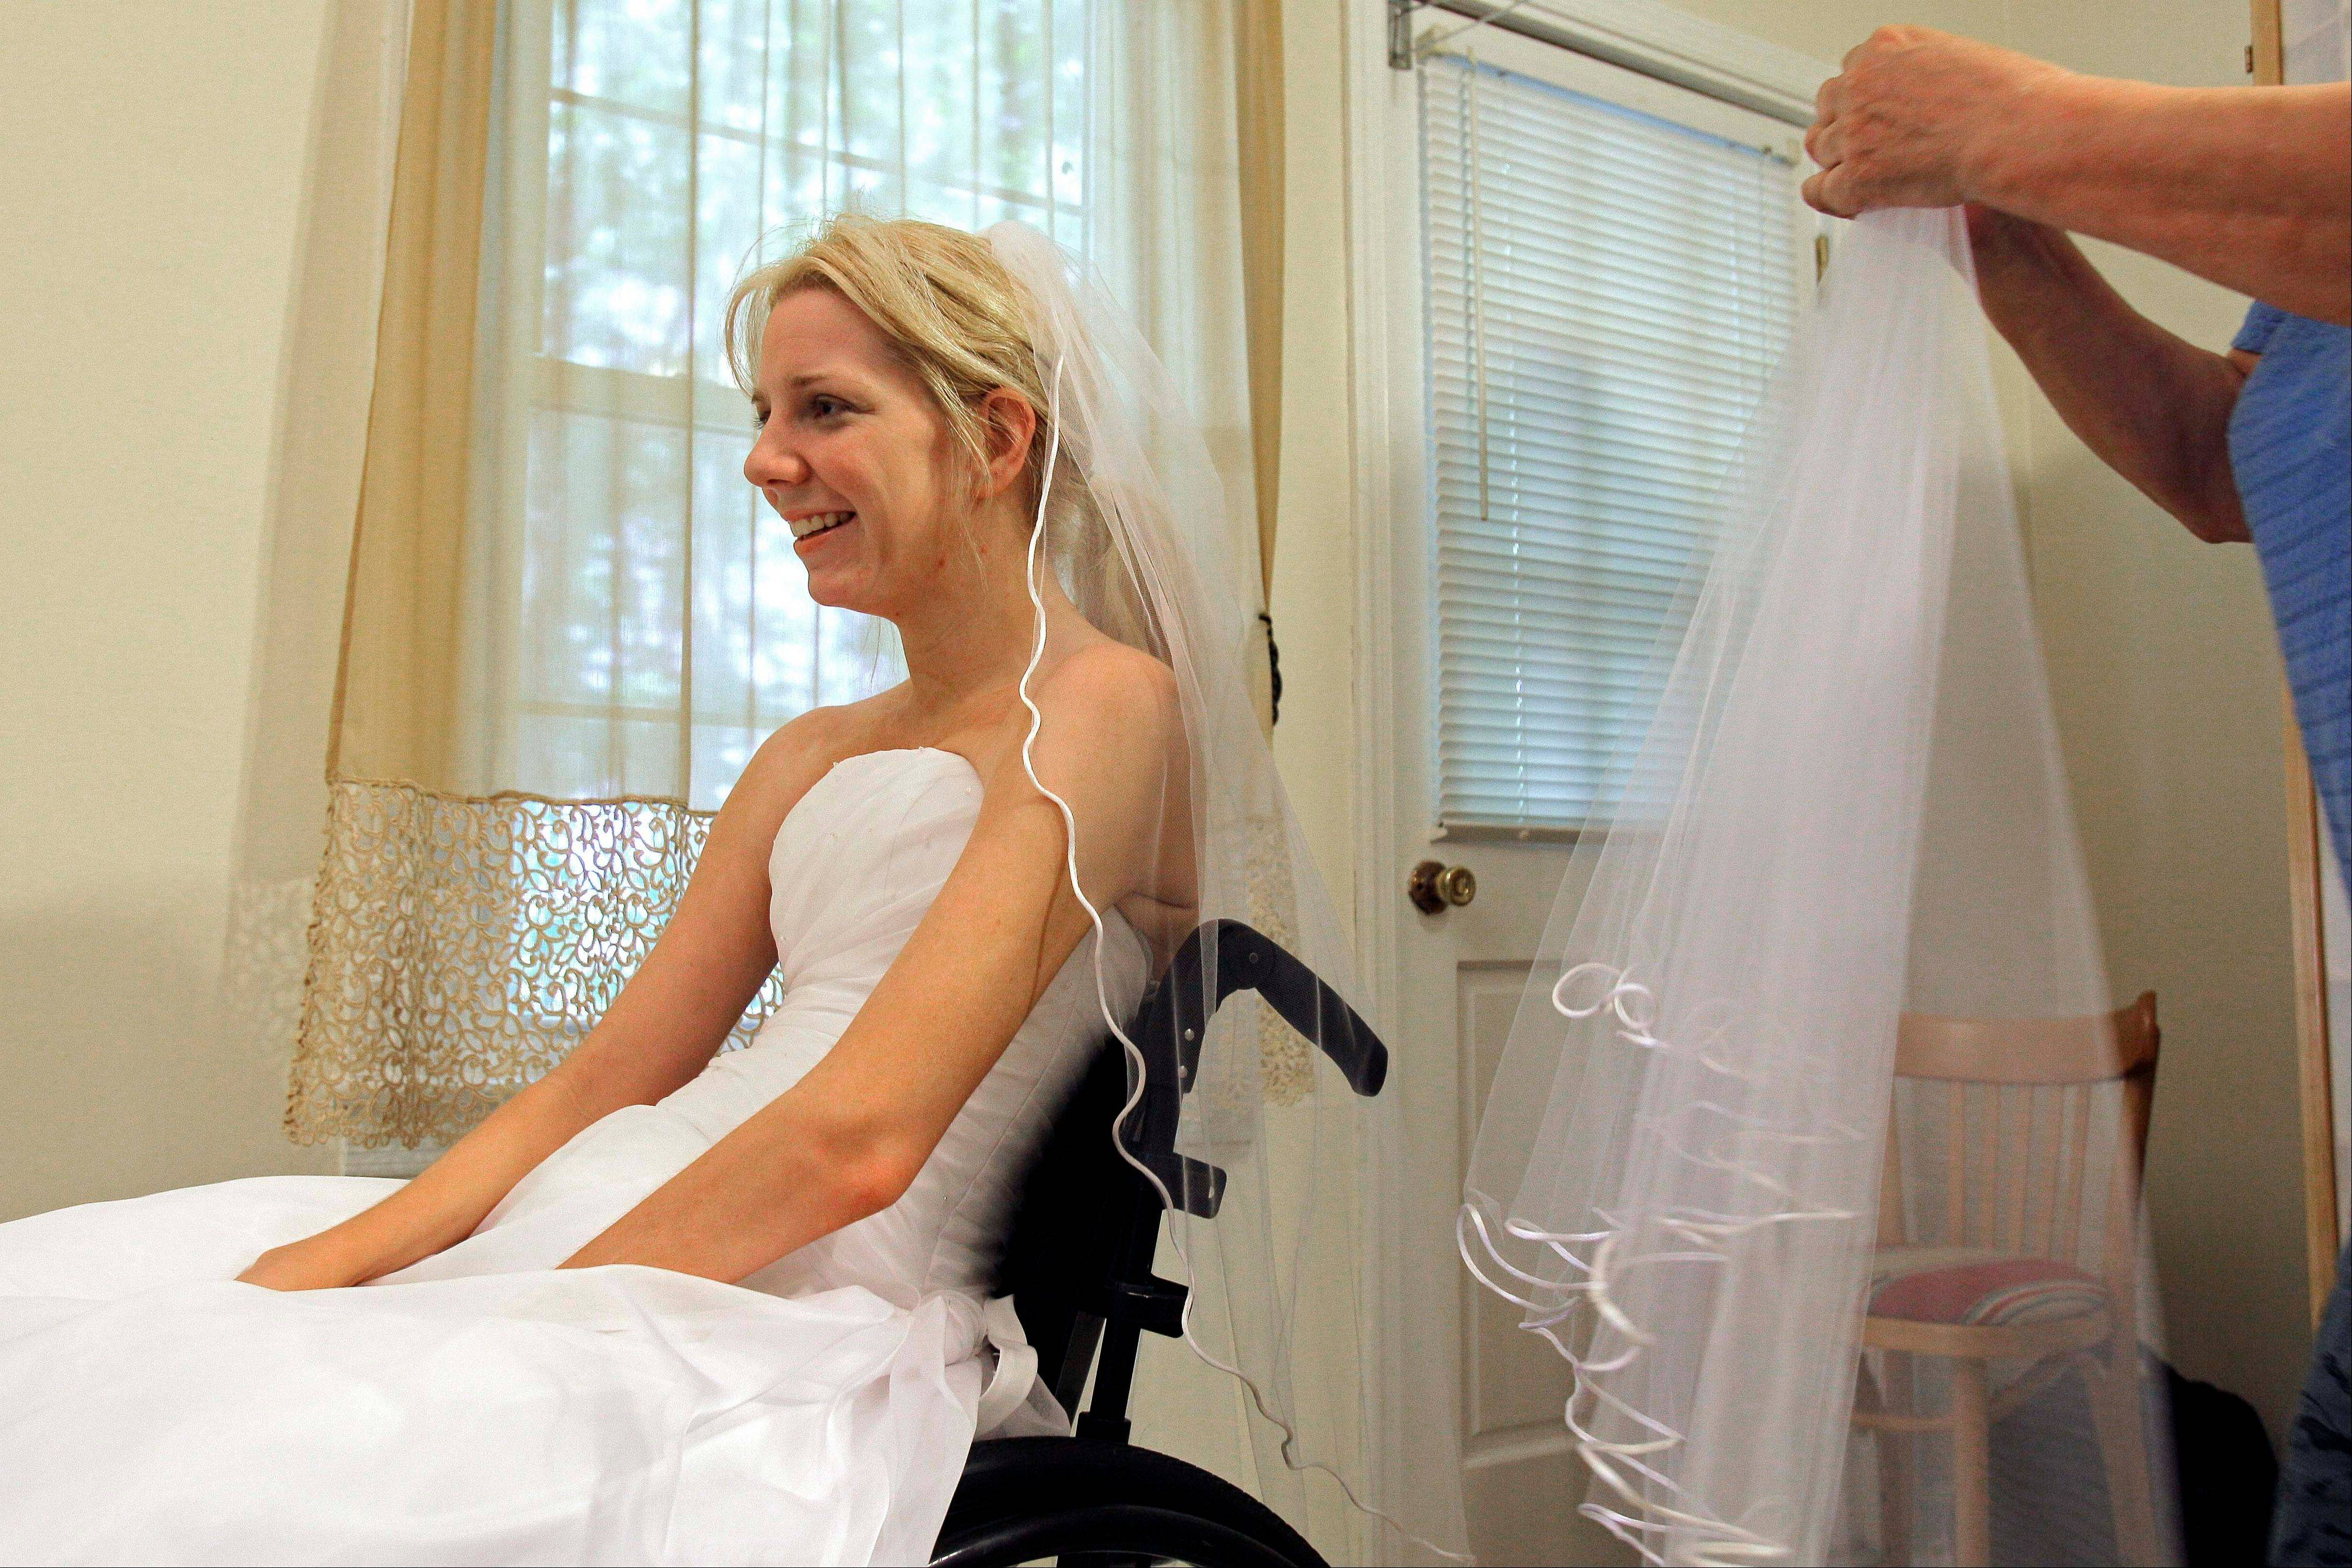 Rachelle Friedman tries on a veil during the fitting for her wedding dress. She was left paralyzed after a swimming pool accident that postponed her wedding plans. But a year later, she is ready for her trip to the altar on Friday.